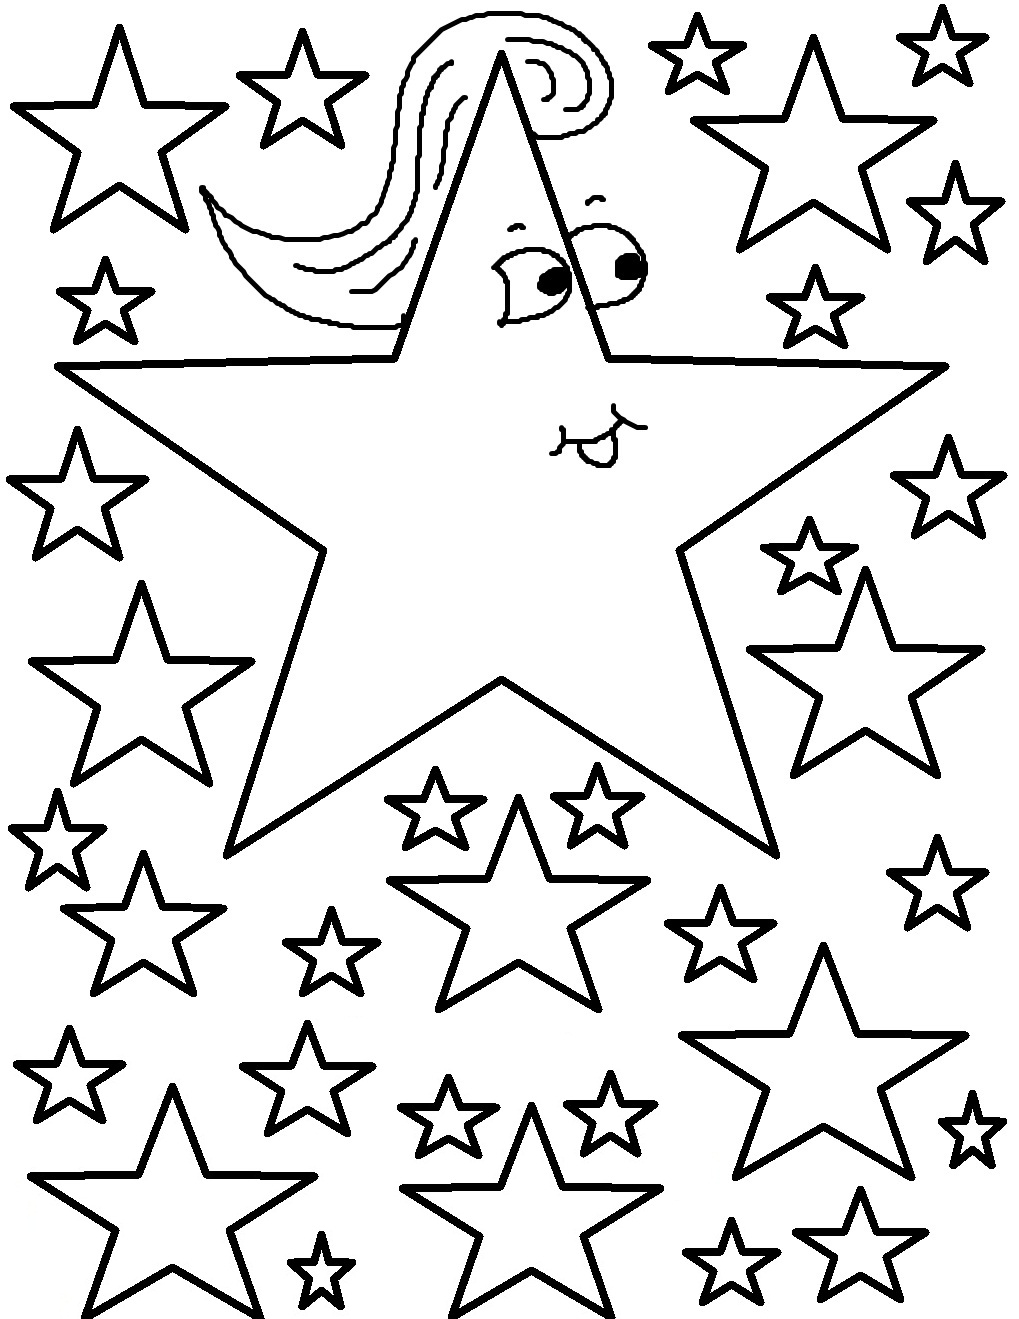 Line Drawing Stars at GetDrawings.com | Free for personal use Line ...